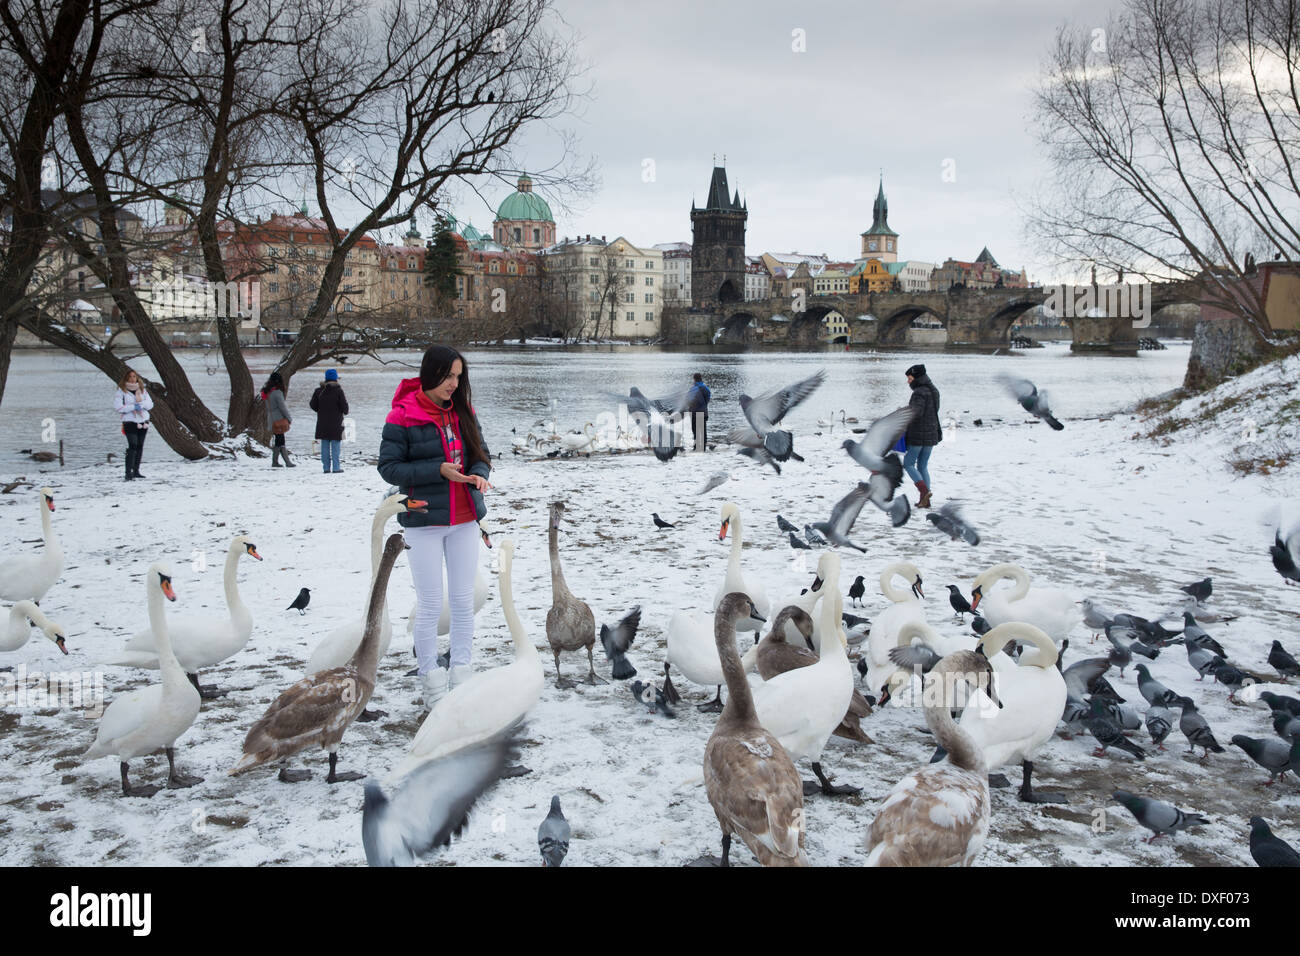 swans and gulls by the Vltava River with Charles Bridge beyond, Prague, Czech Republic - Stock Image